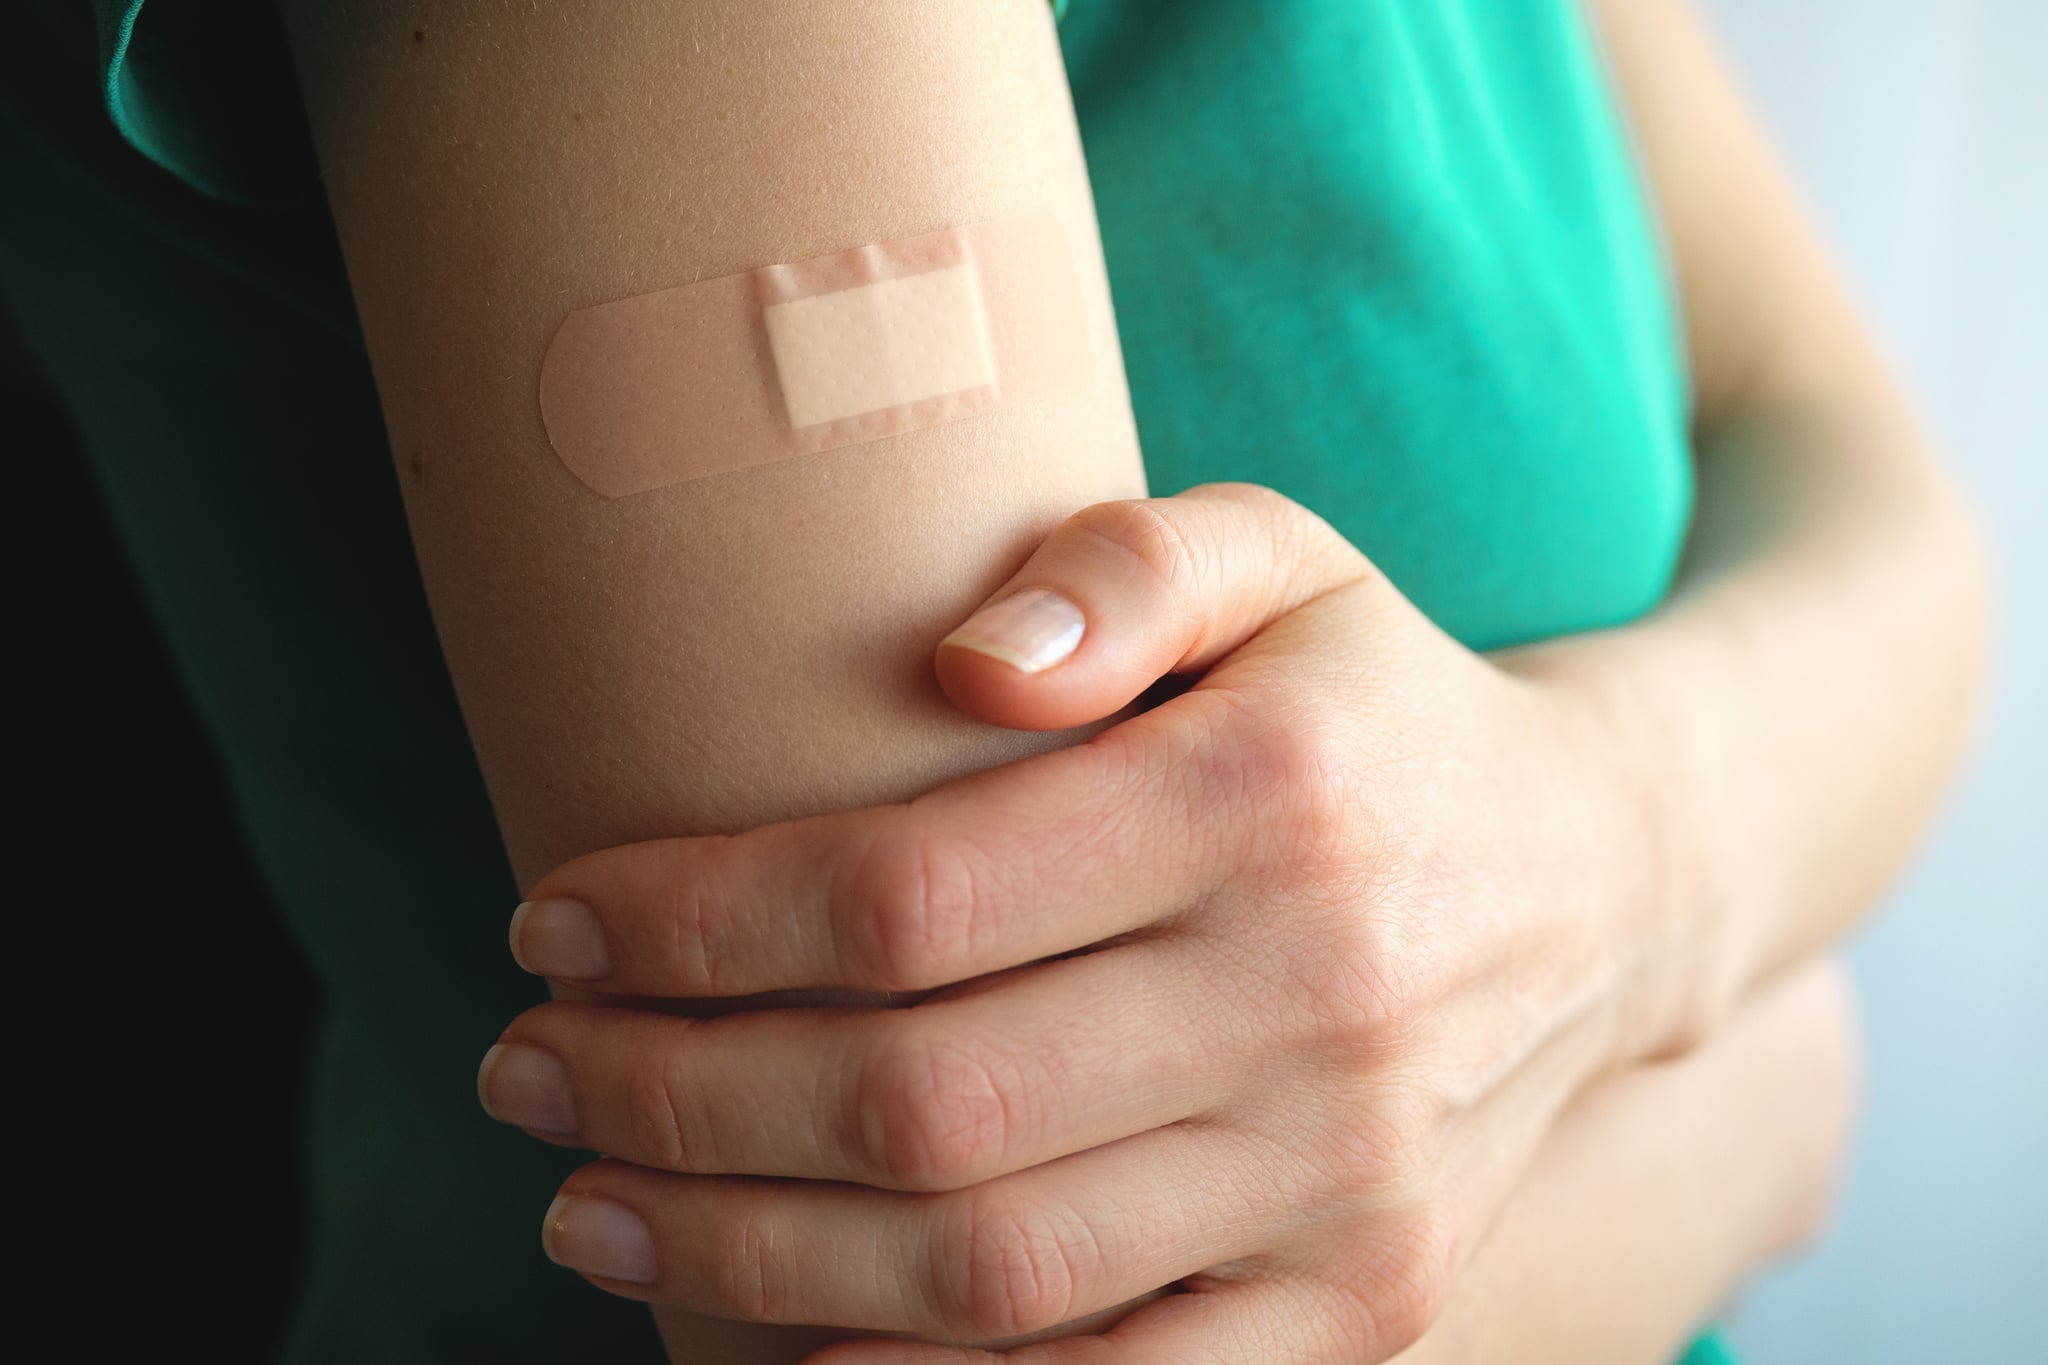 A girl or young woman holds her hand, which is covered with a patch or adhesive bandage after vaccination or injection of medication. The concept of medicine and health care, vaccination and treatment of diseases. First aid.